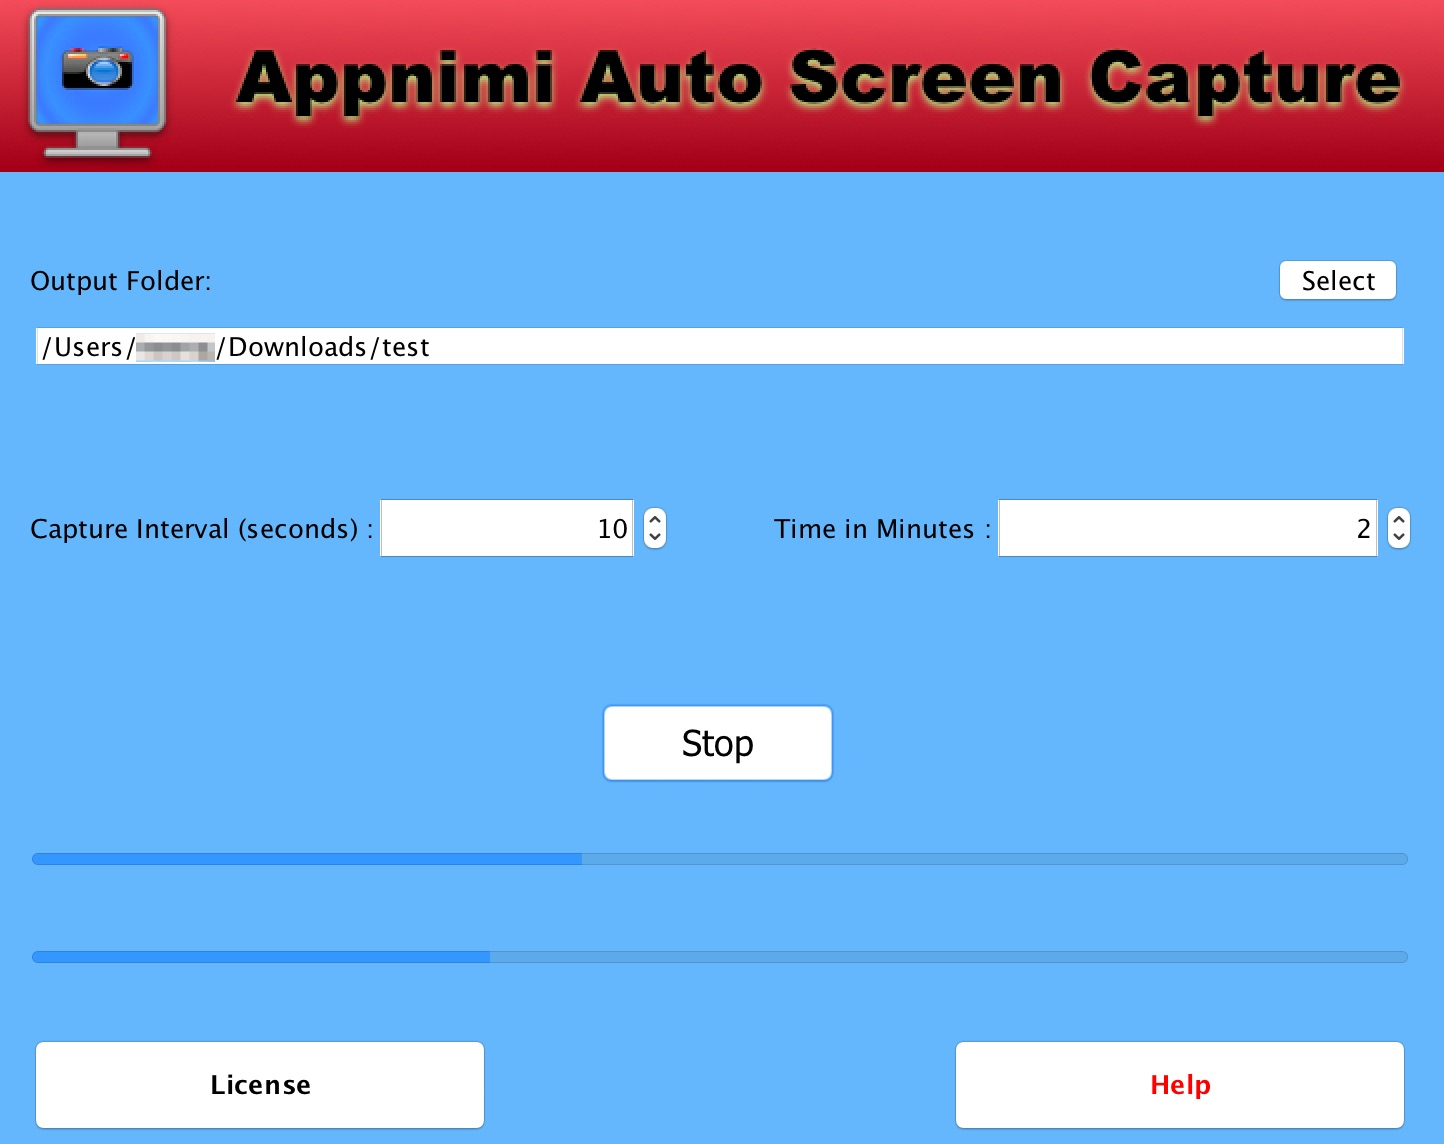 Appnimi Auto Screen Capture Screen shot